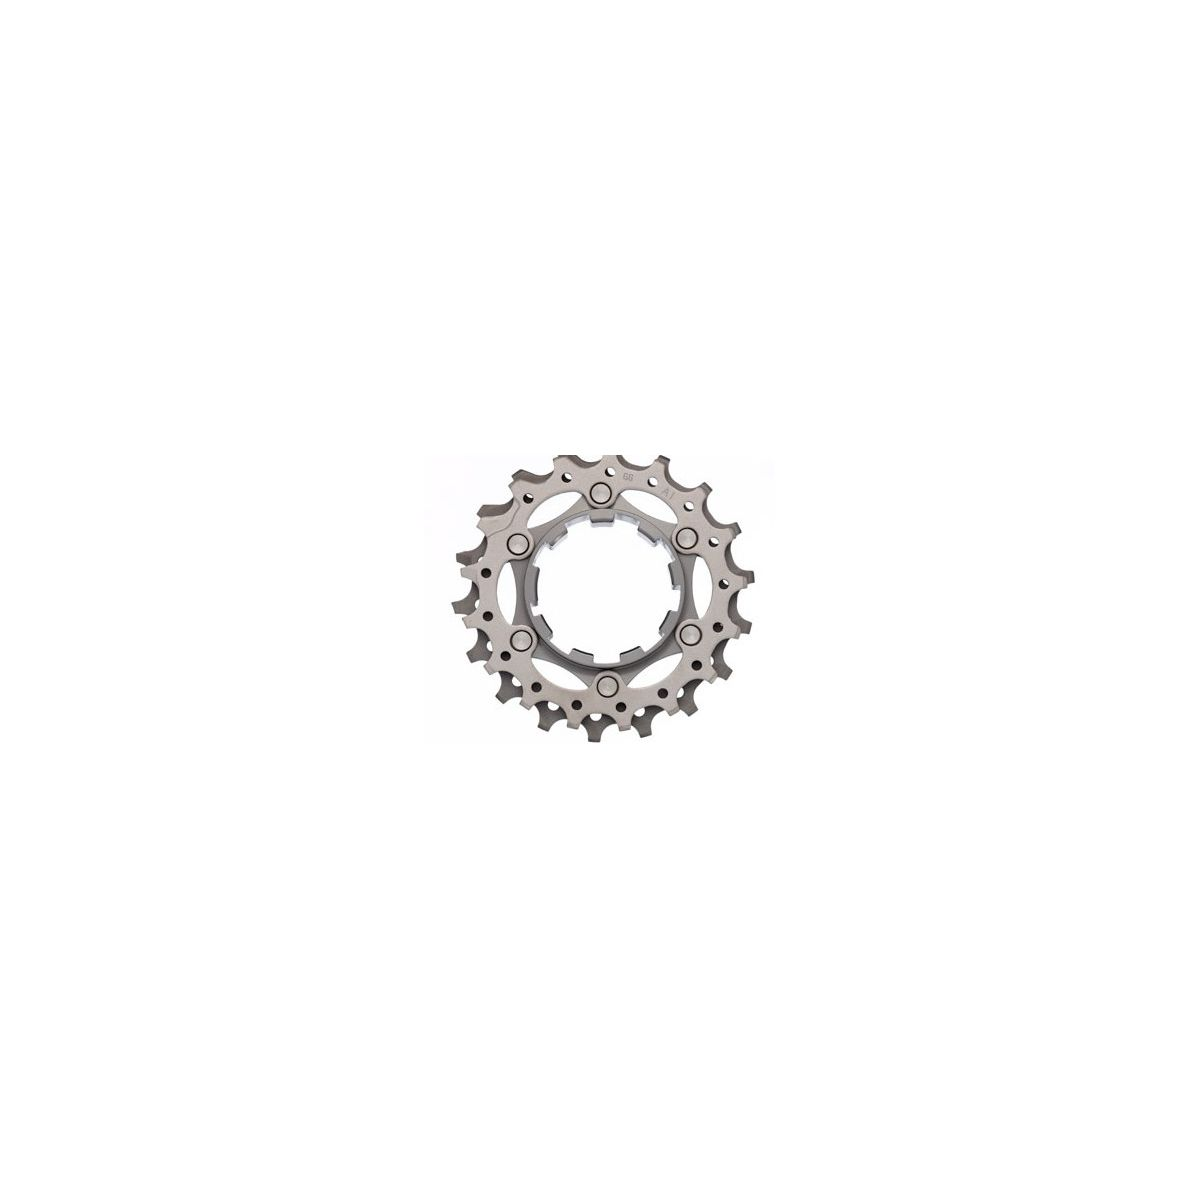 Dura Ace CS-7900 replacement sprocket